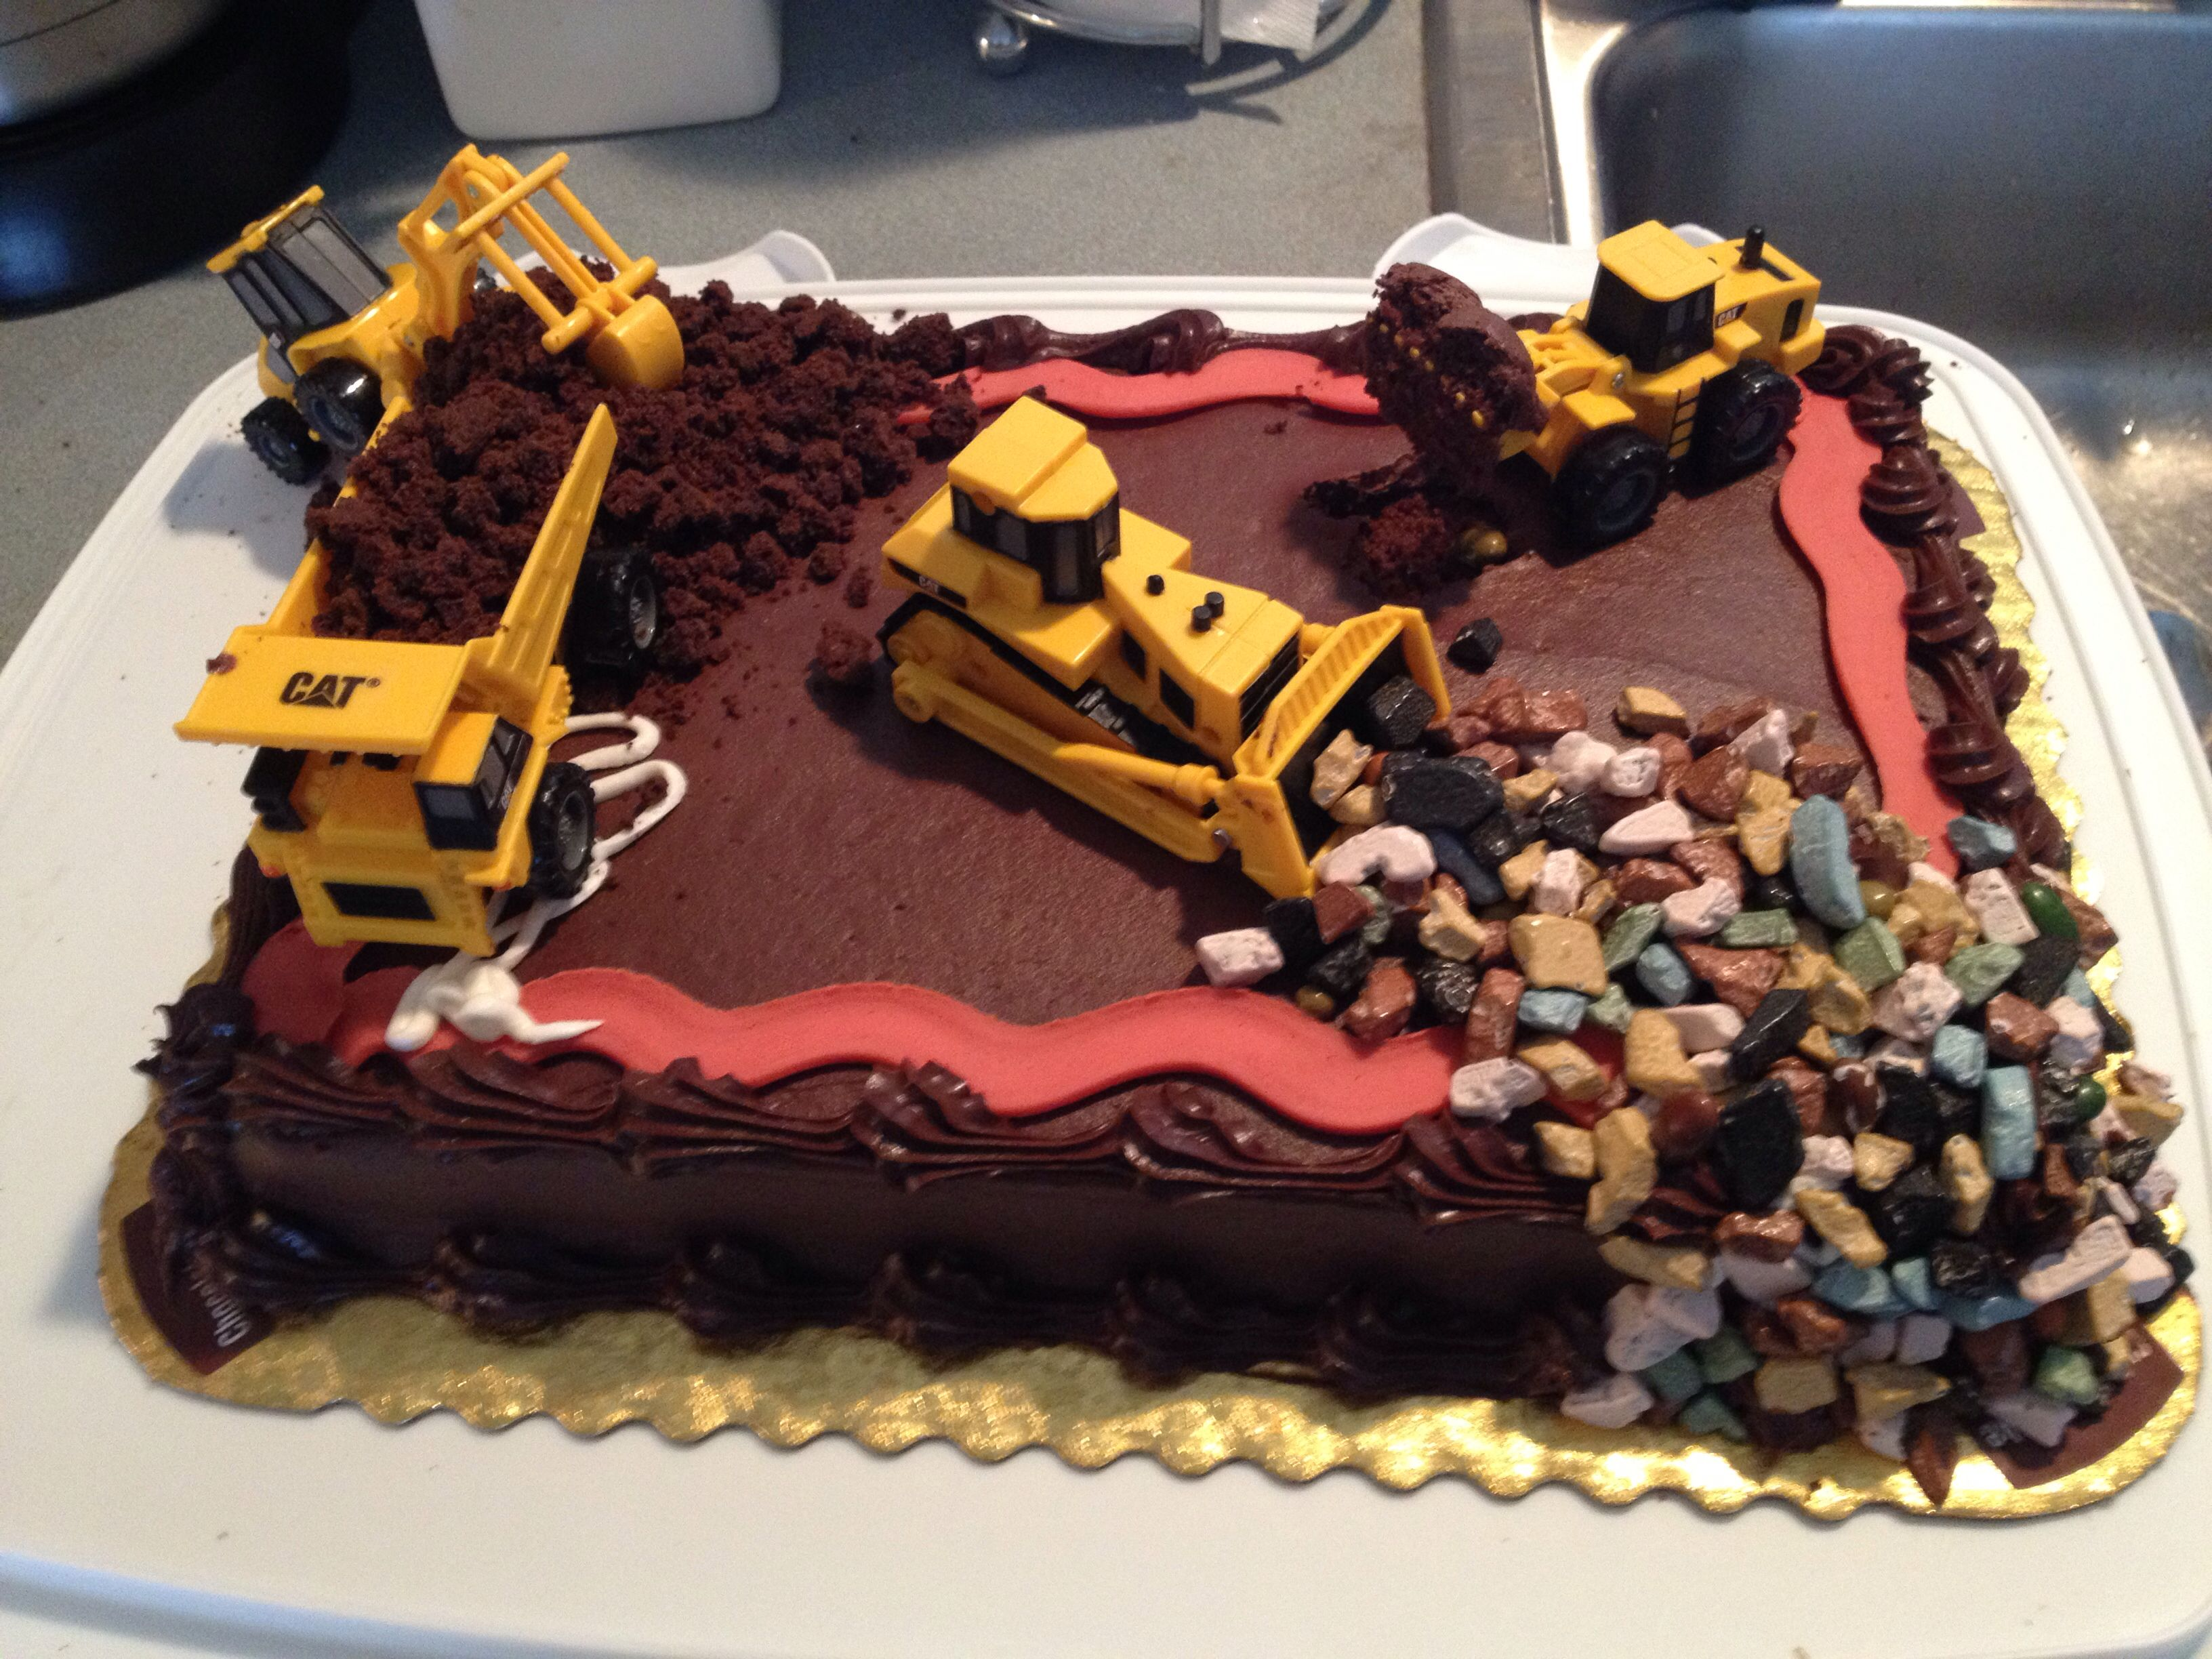 Construction Site Cake Store Bought Chocolate Cake With Chocolate